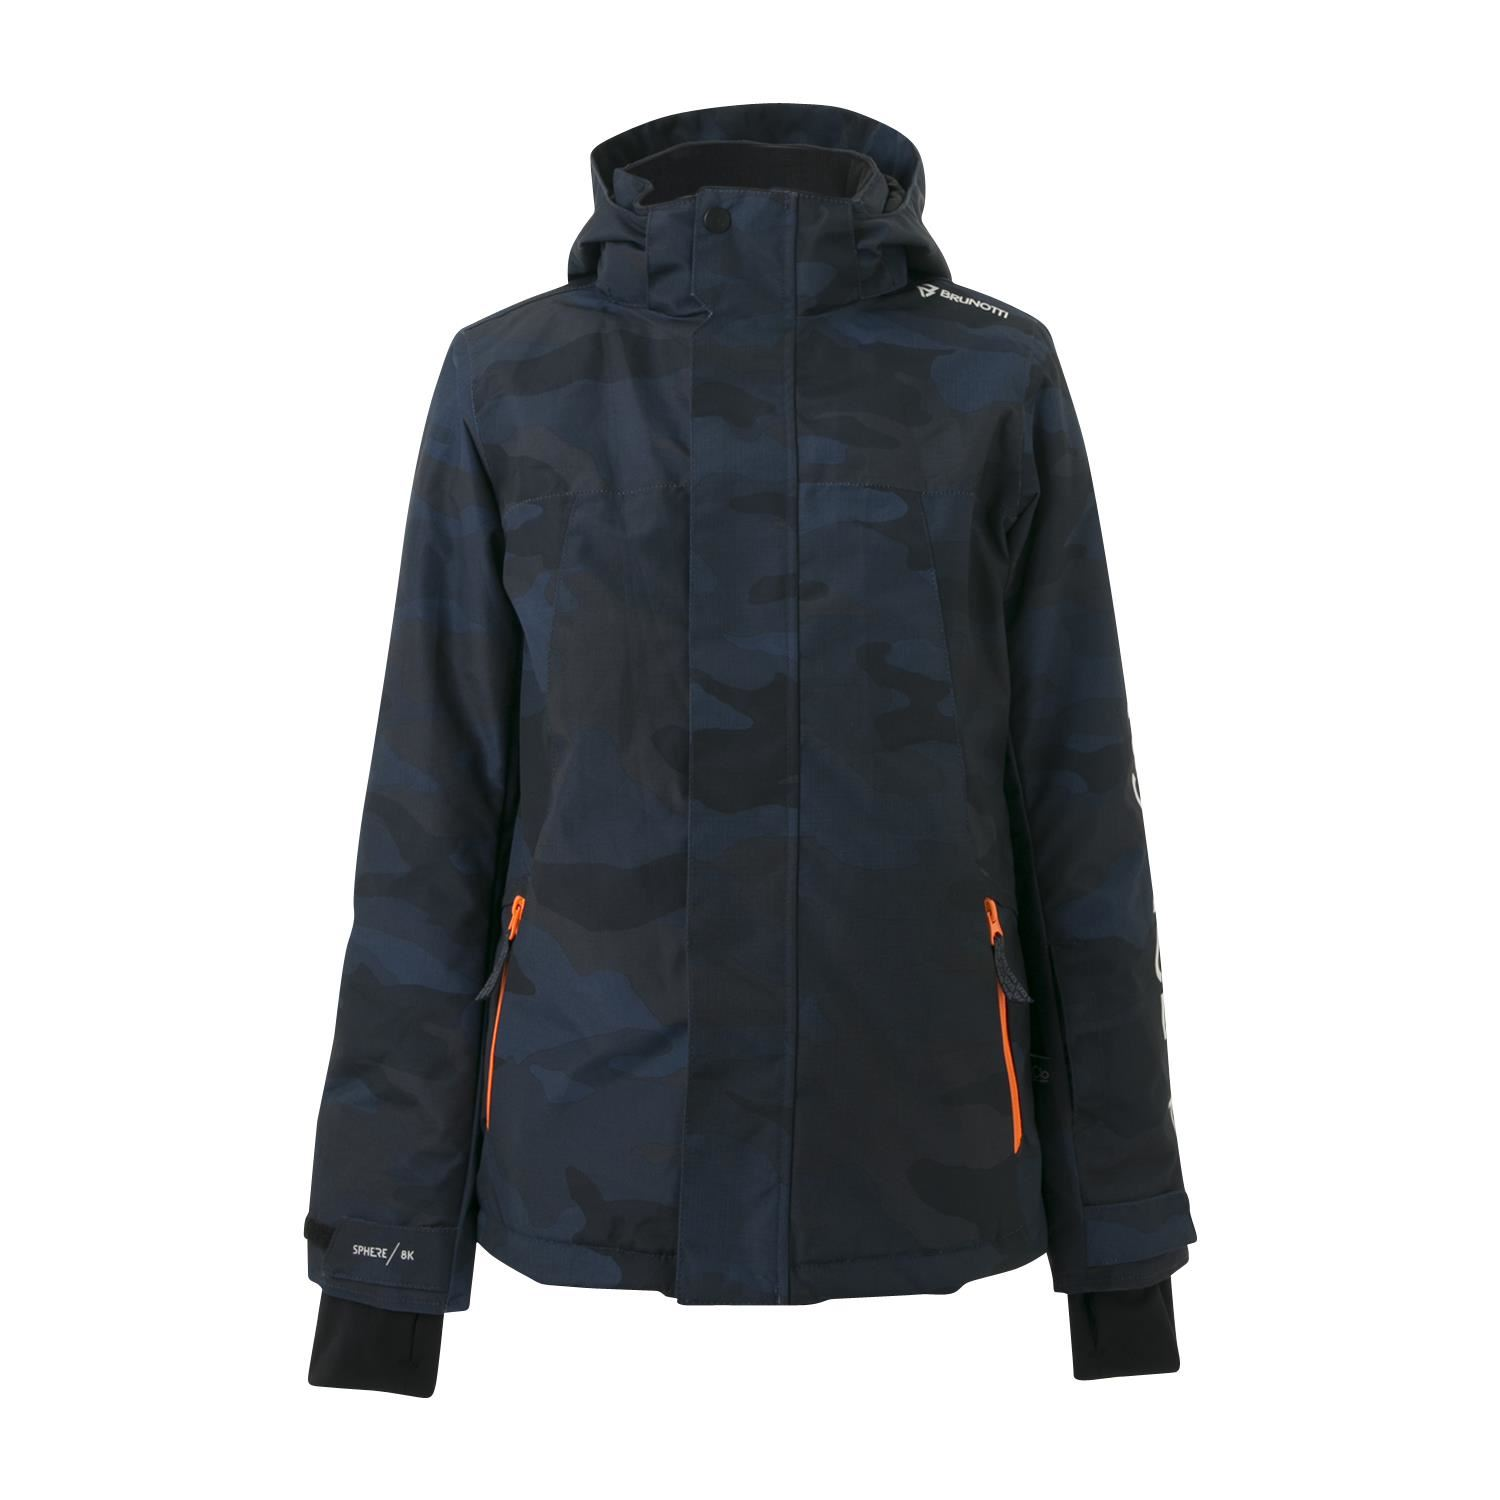 576e3b030 closer at 9b2ad 7219d brunotti gullies grey boys jackets brunotti ...